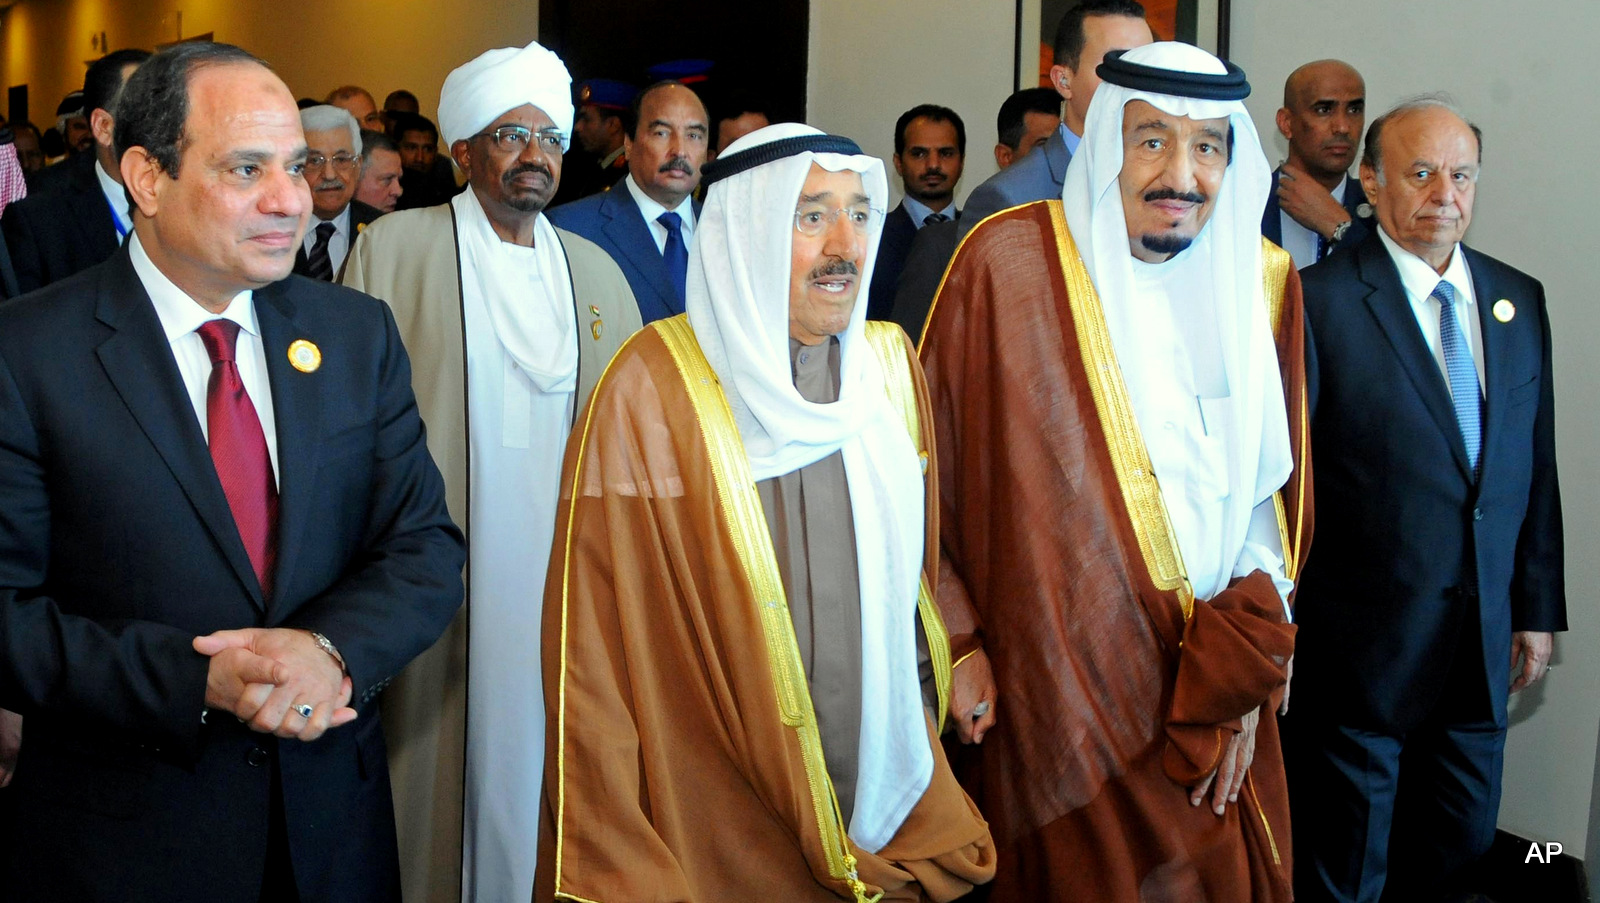 From left to right Egyptian President Abdel-Fattah el-Sissi, Sudanese President Omar al-Bashir, Kuwait's Emir Sheik Sabah Al-Ahmad Al-Jaber Al-Sabah, Saudi King Salman, second and Yemeni President Abdel Rabbo Mansour Hadi, right, walk to an Arab summit meeting in Sharm el-Sheikh, South Sinai, Egypt, Saturday, March 28, 2015.